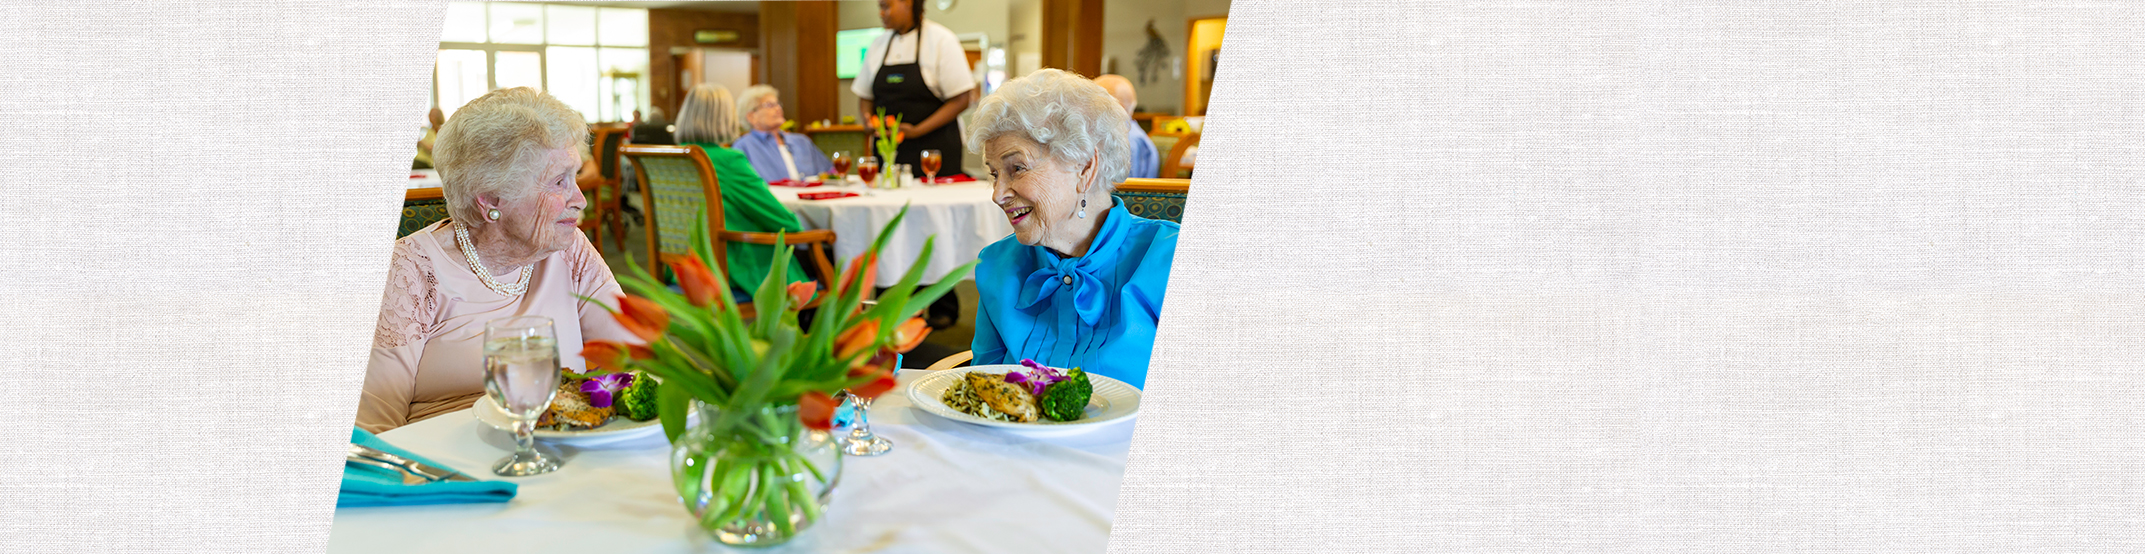 presbyterian village header-ladiesdining2